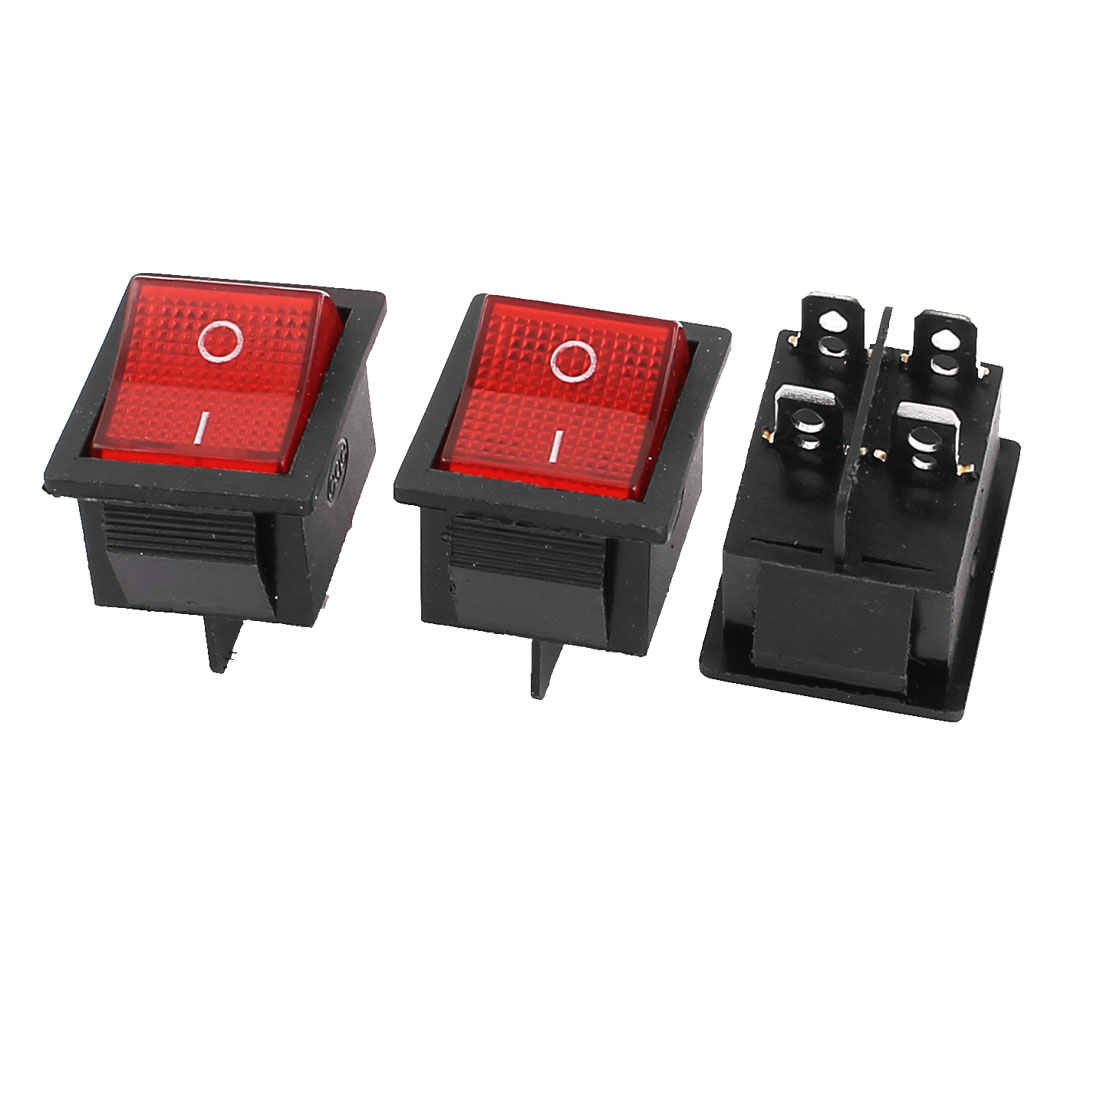 3Pcs 15A 250V/20A 125V AC 4 Pin DPST ON/OFF Snap in Boat Rocker Switch